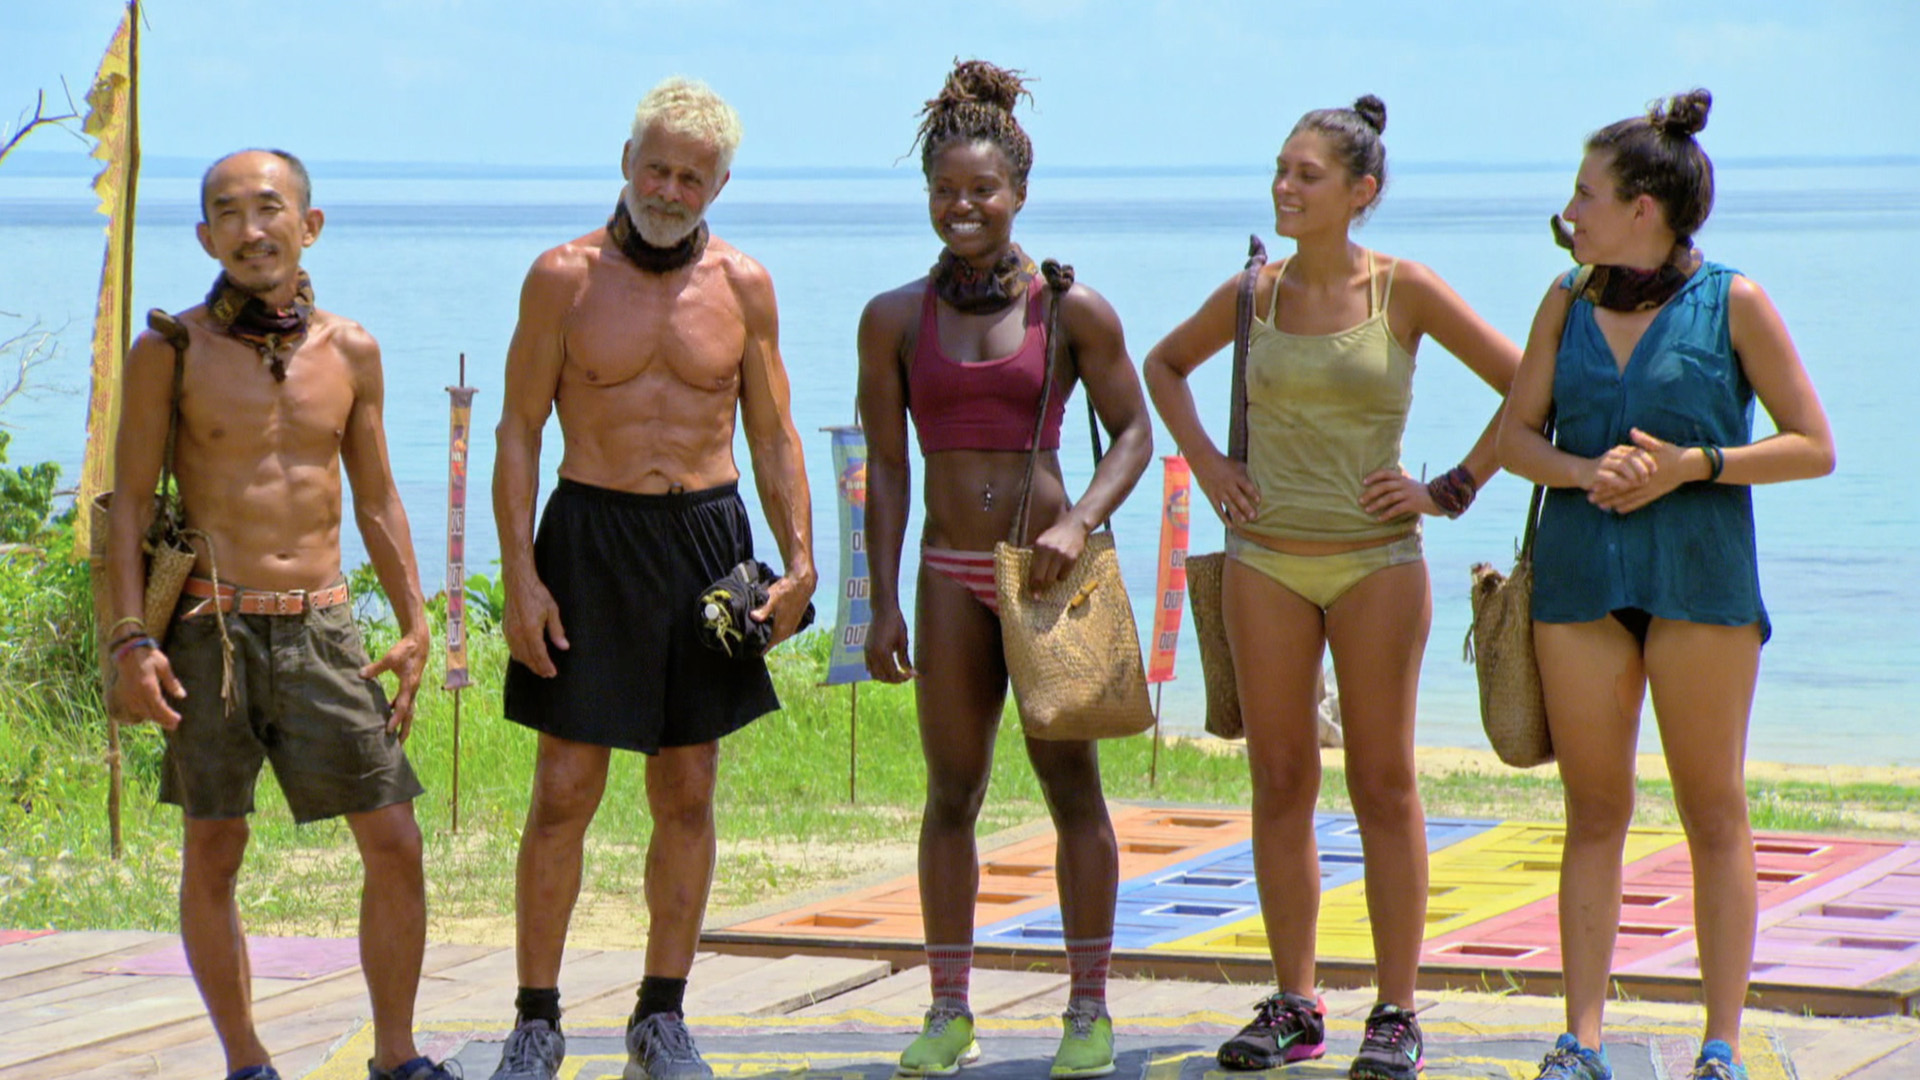 The Final 5 castaways on Survivor: Kaoh Rong get ready for the Individual Reward Challenge.